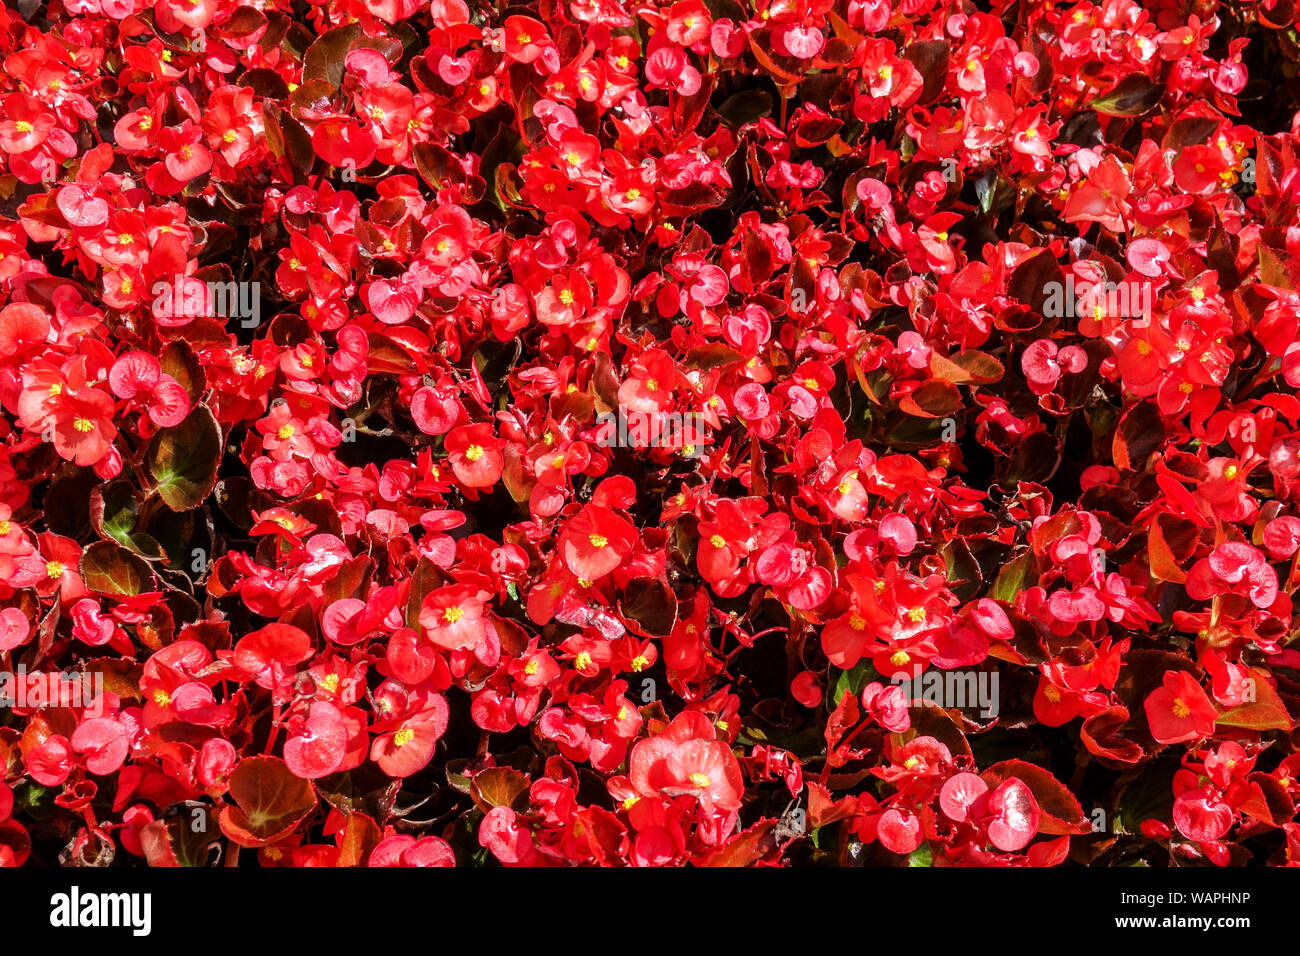 Red Wax begonia, background with many flowers Stock Photo